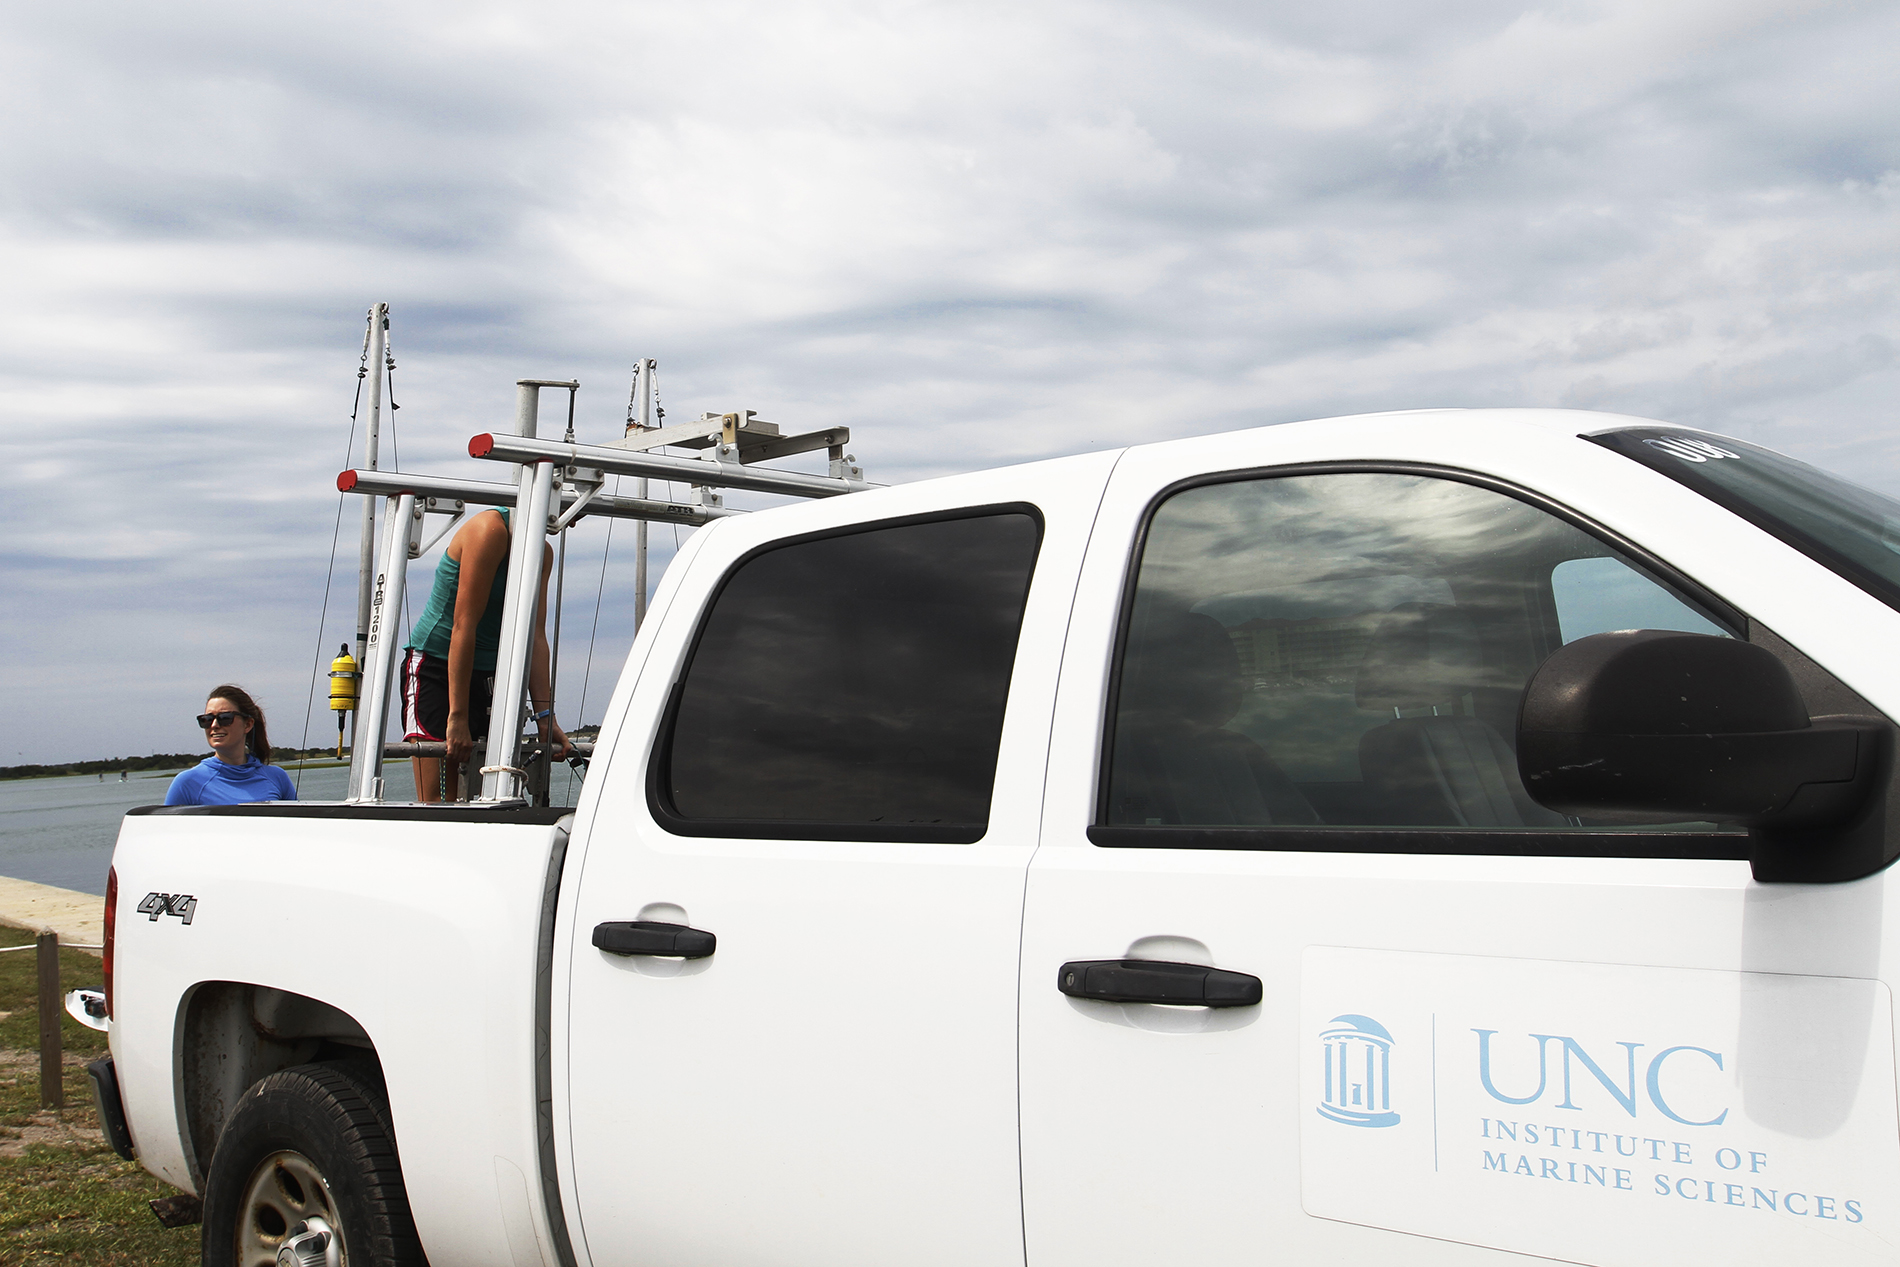 The team uses a truck to transport the rig and all of their equipment to the next sampling site. They will sample three different sites along the shoreline during the day and at night.